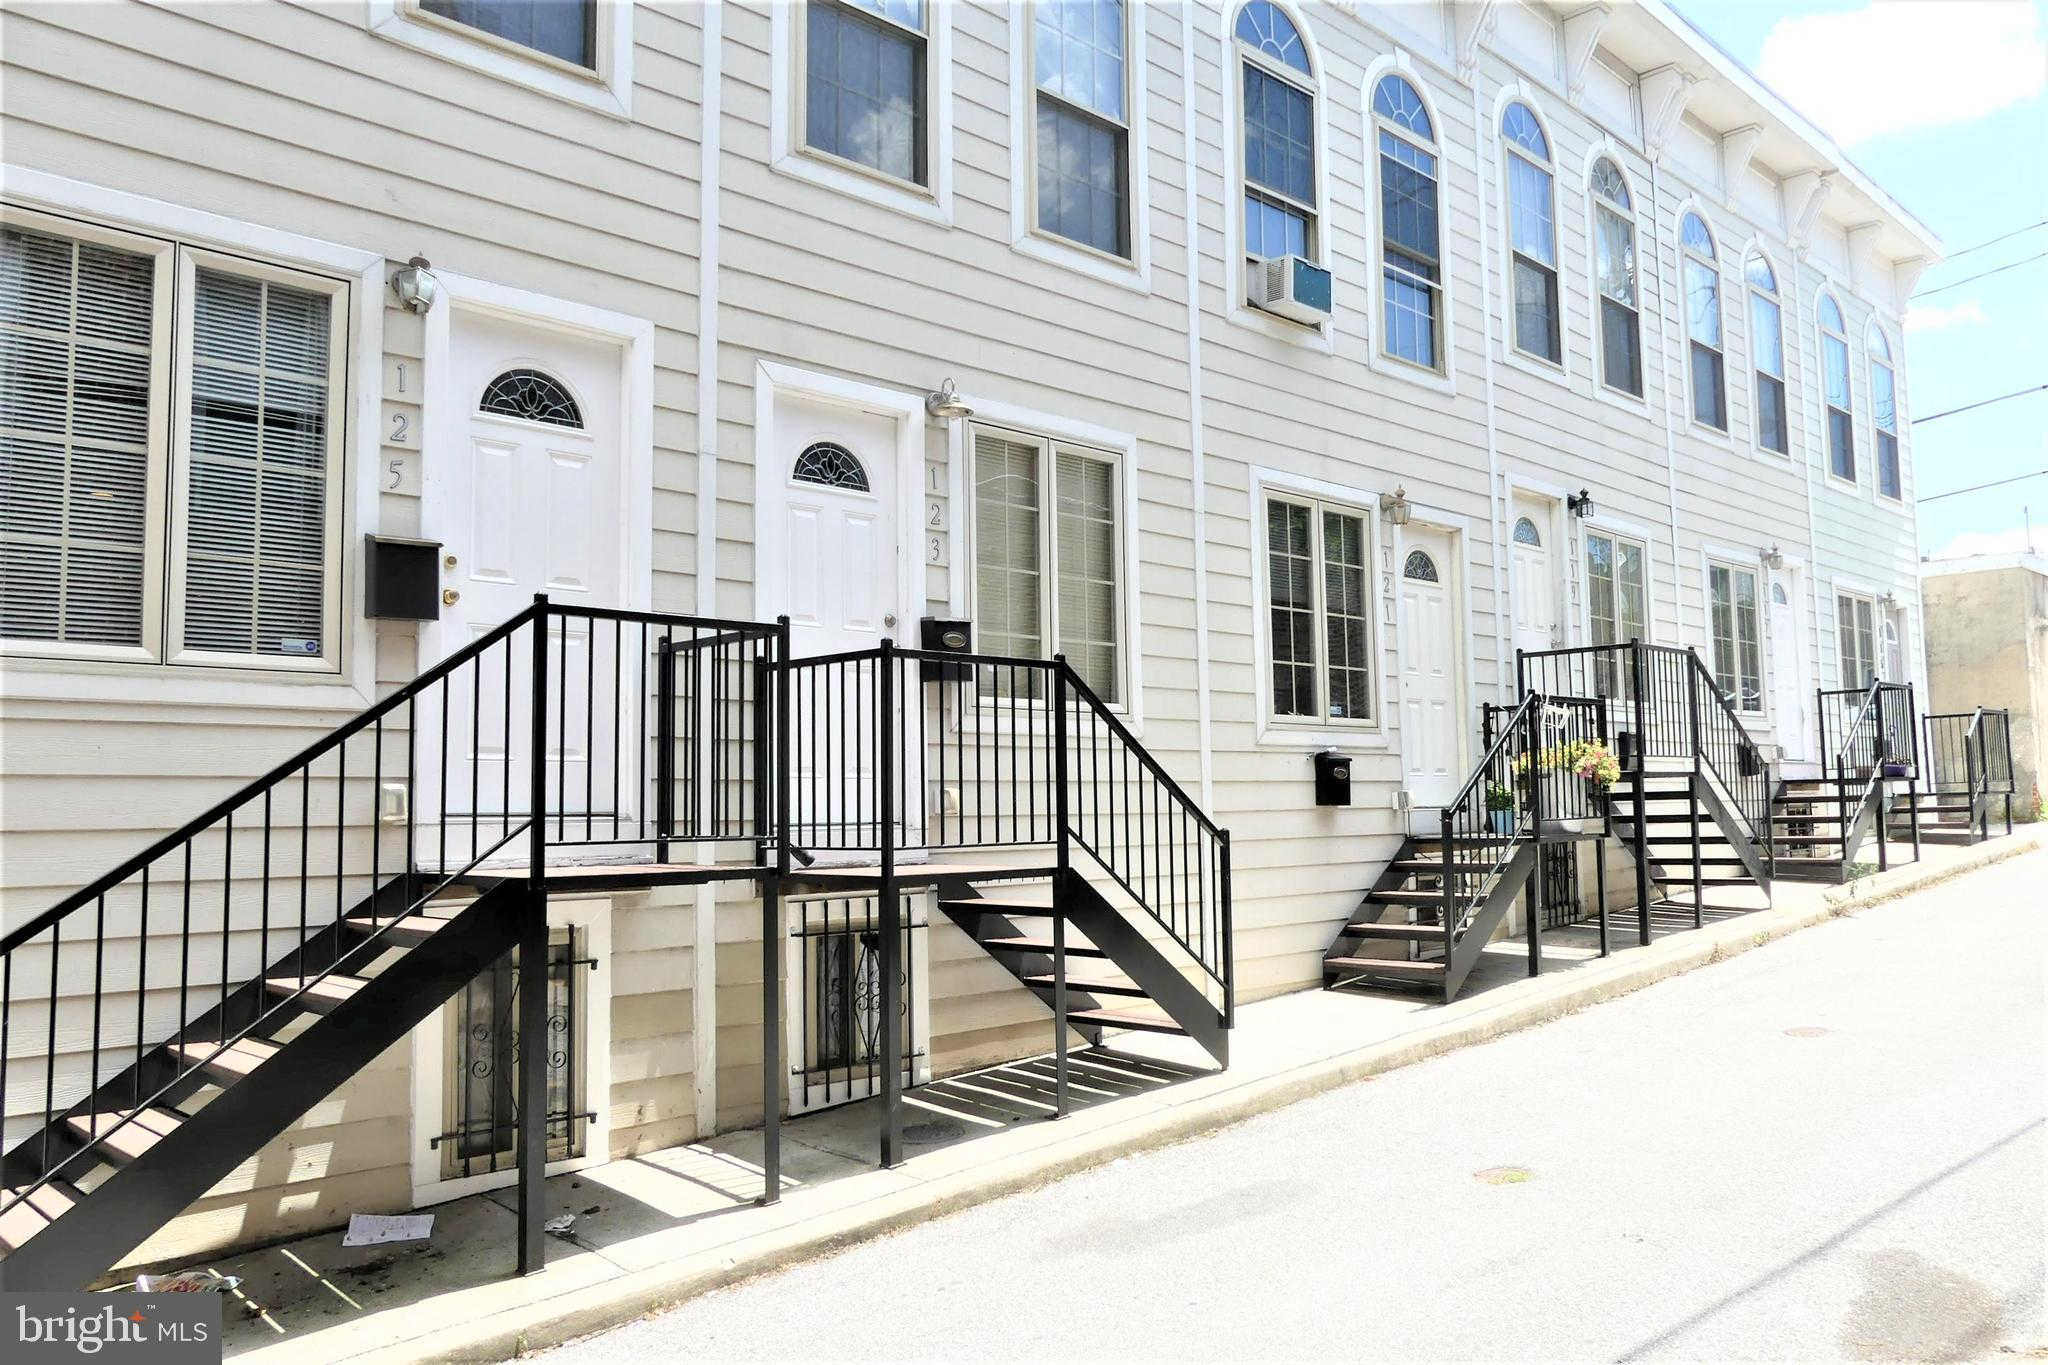 127 N Duncan Street, Baltimore, MD 21231 now has a new price of $1,450!